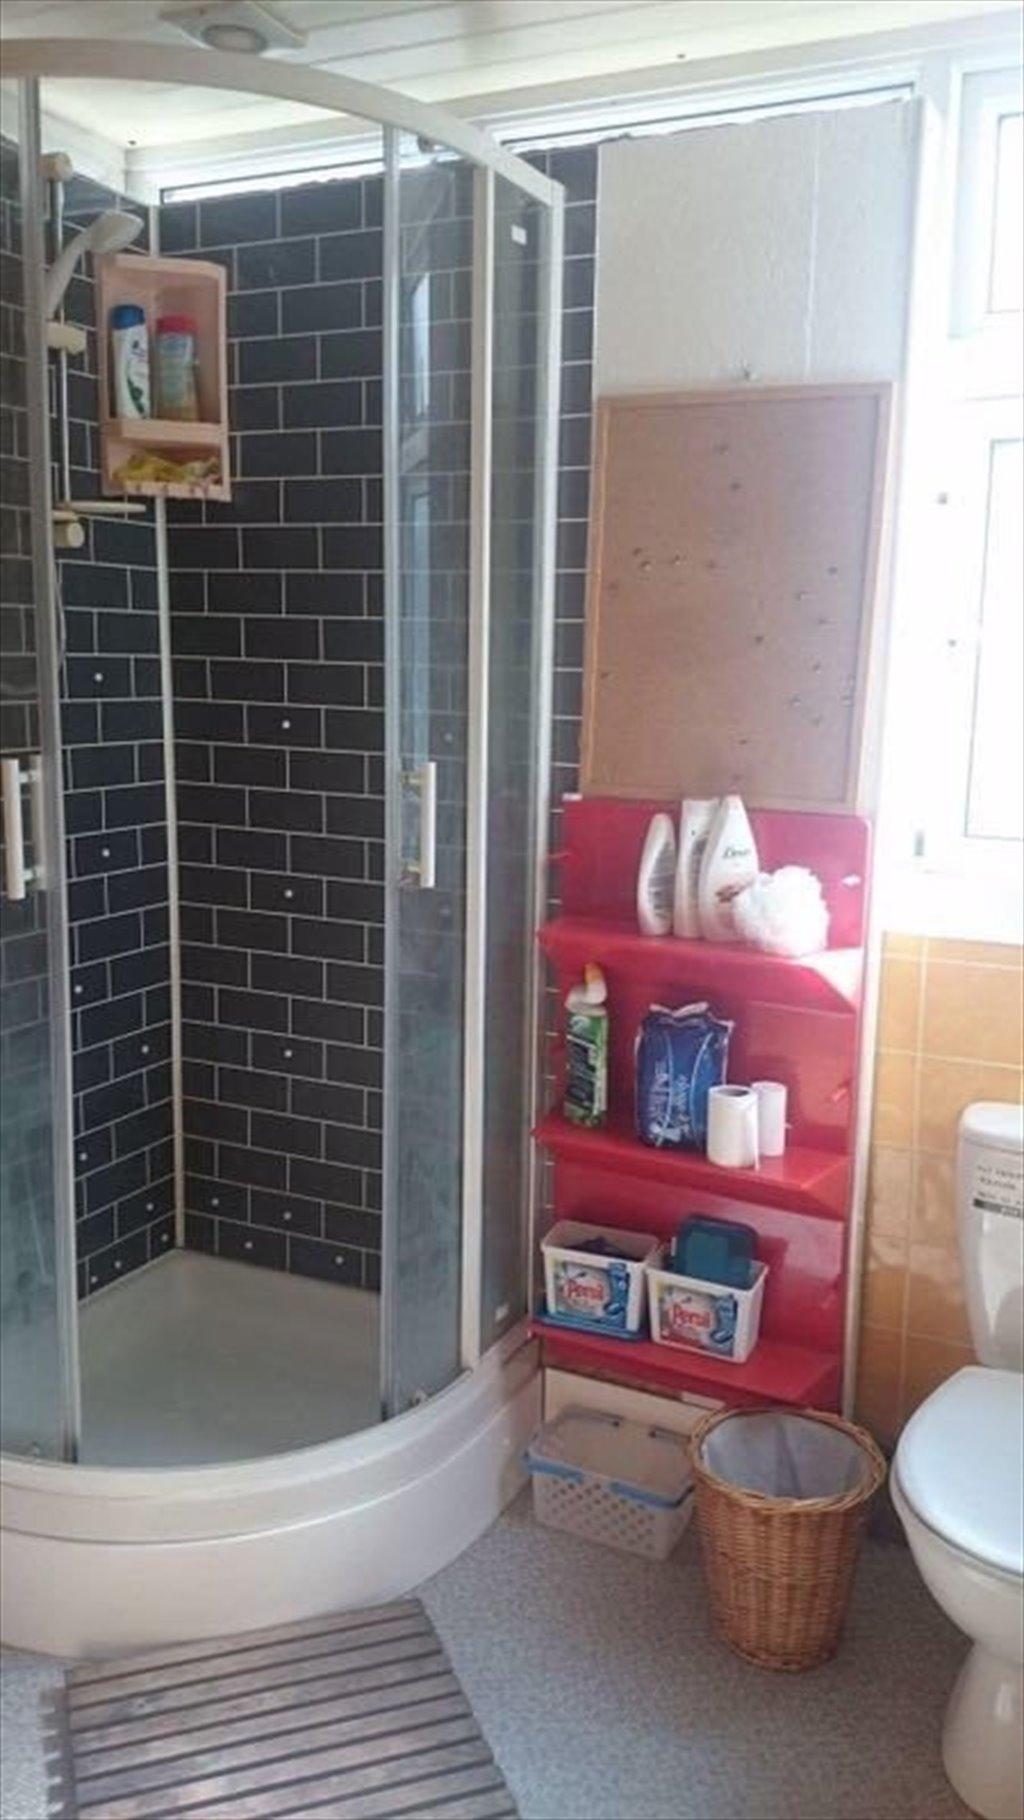 Room To Rent In Saint Chads Avenue Leeds PM INC ALL BILLS - Rooms for rent with private bathroom and kitchen